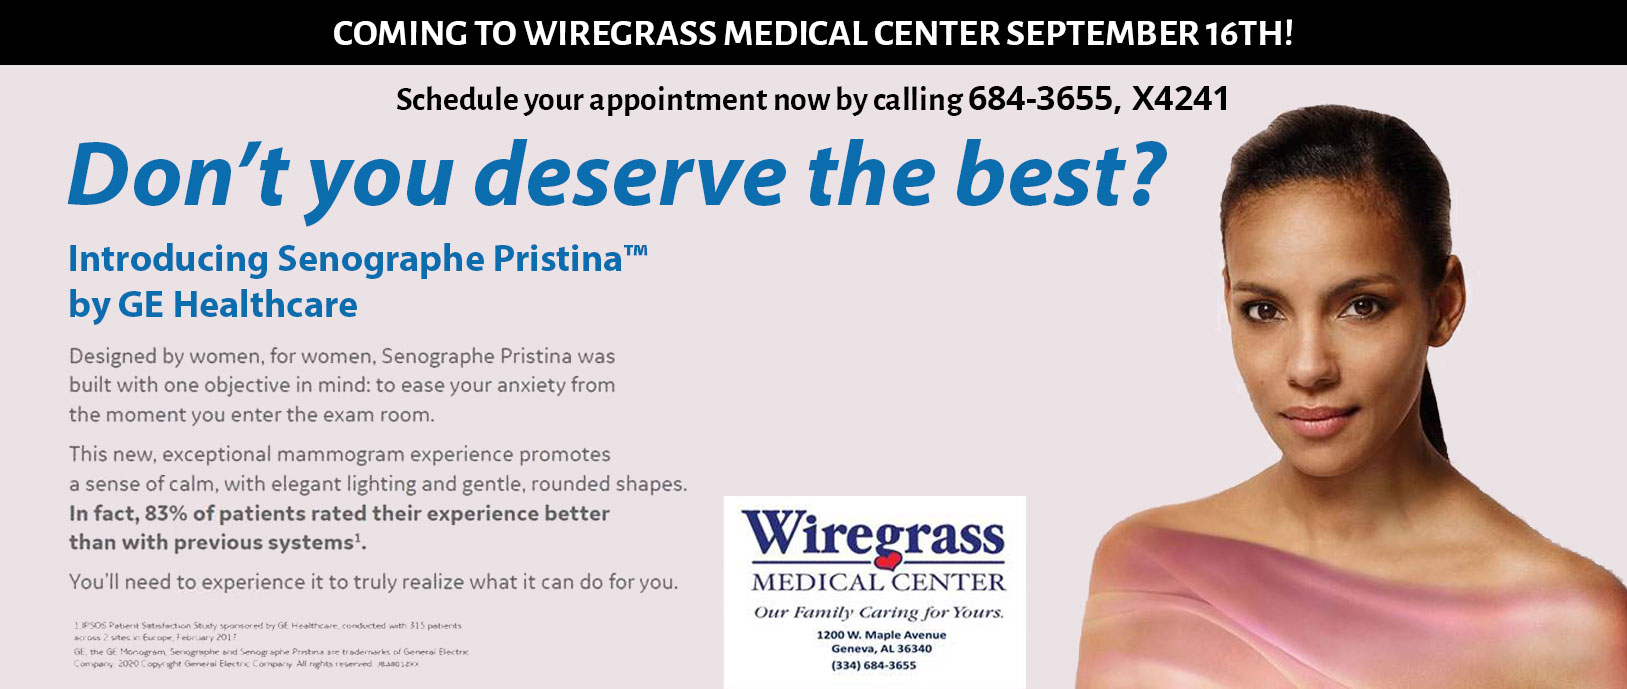 Dont you deserve the best? Introducing Senographe Pristina by GE Healthcare.